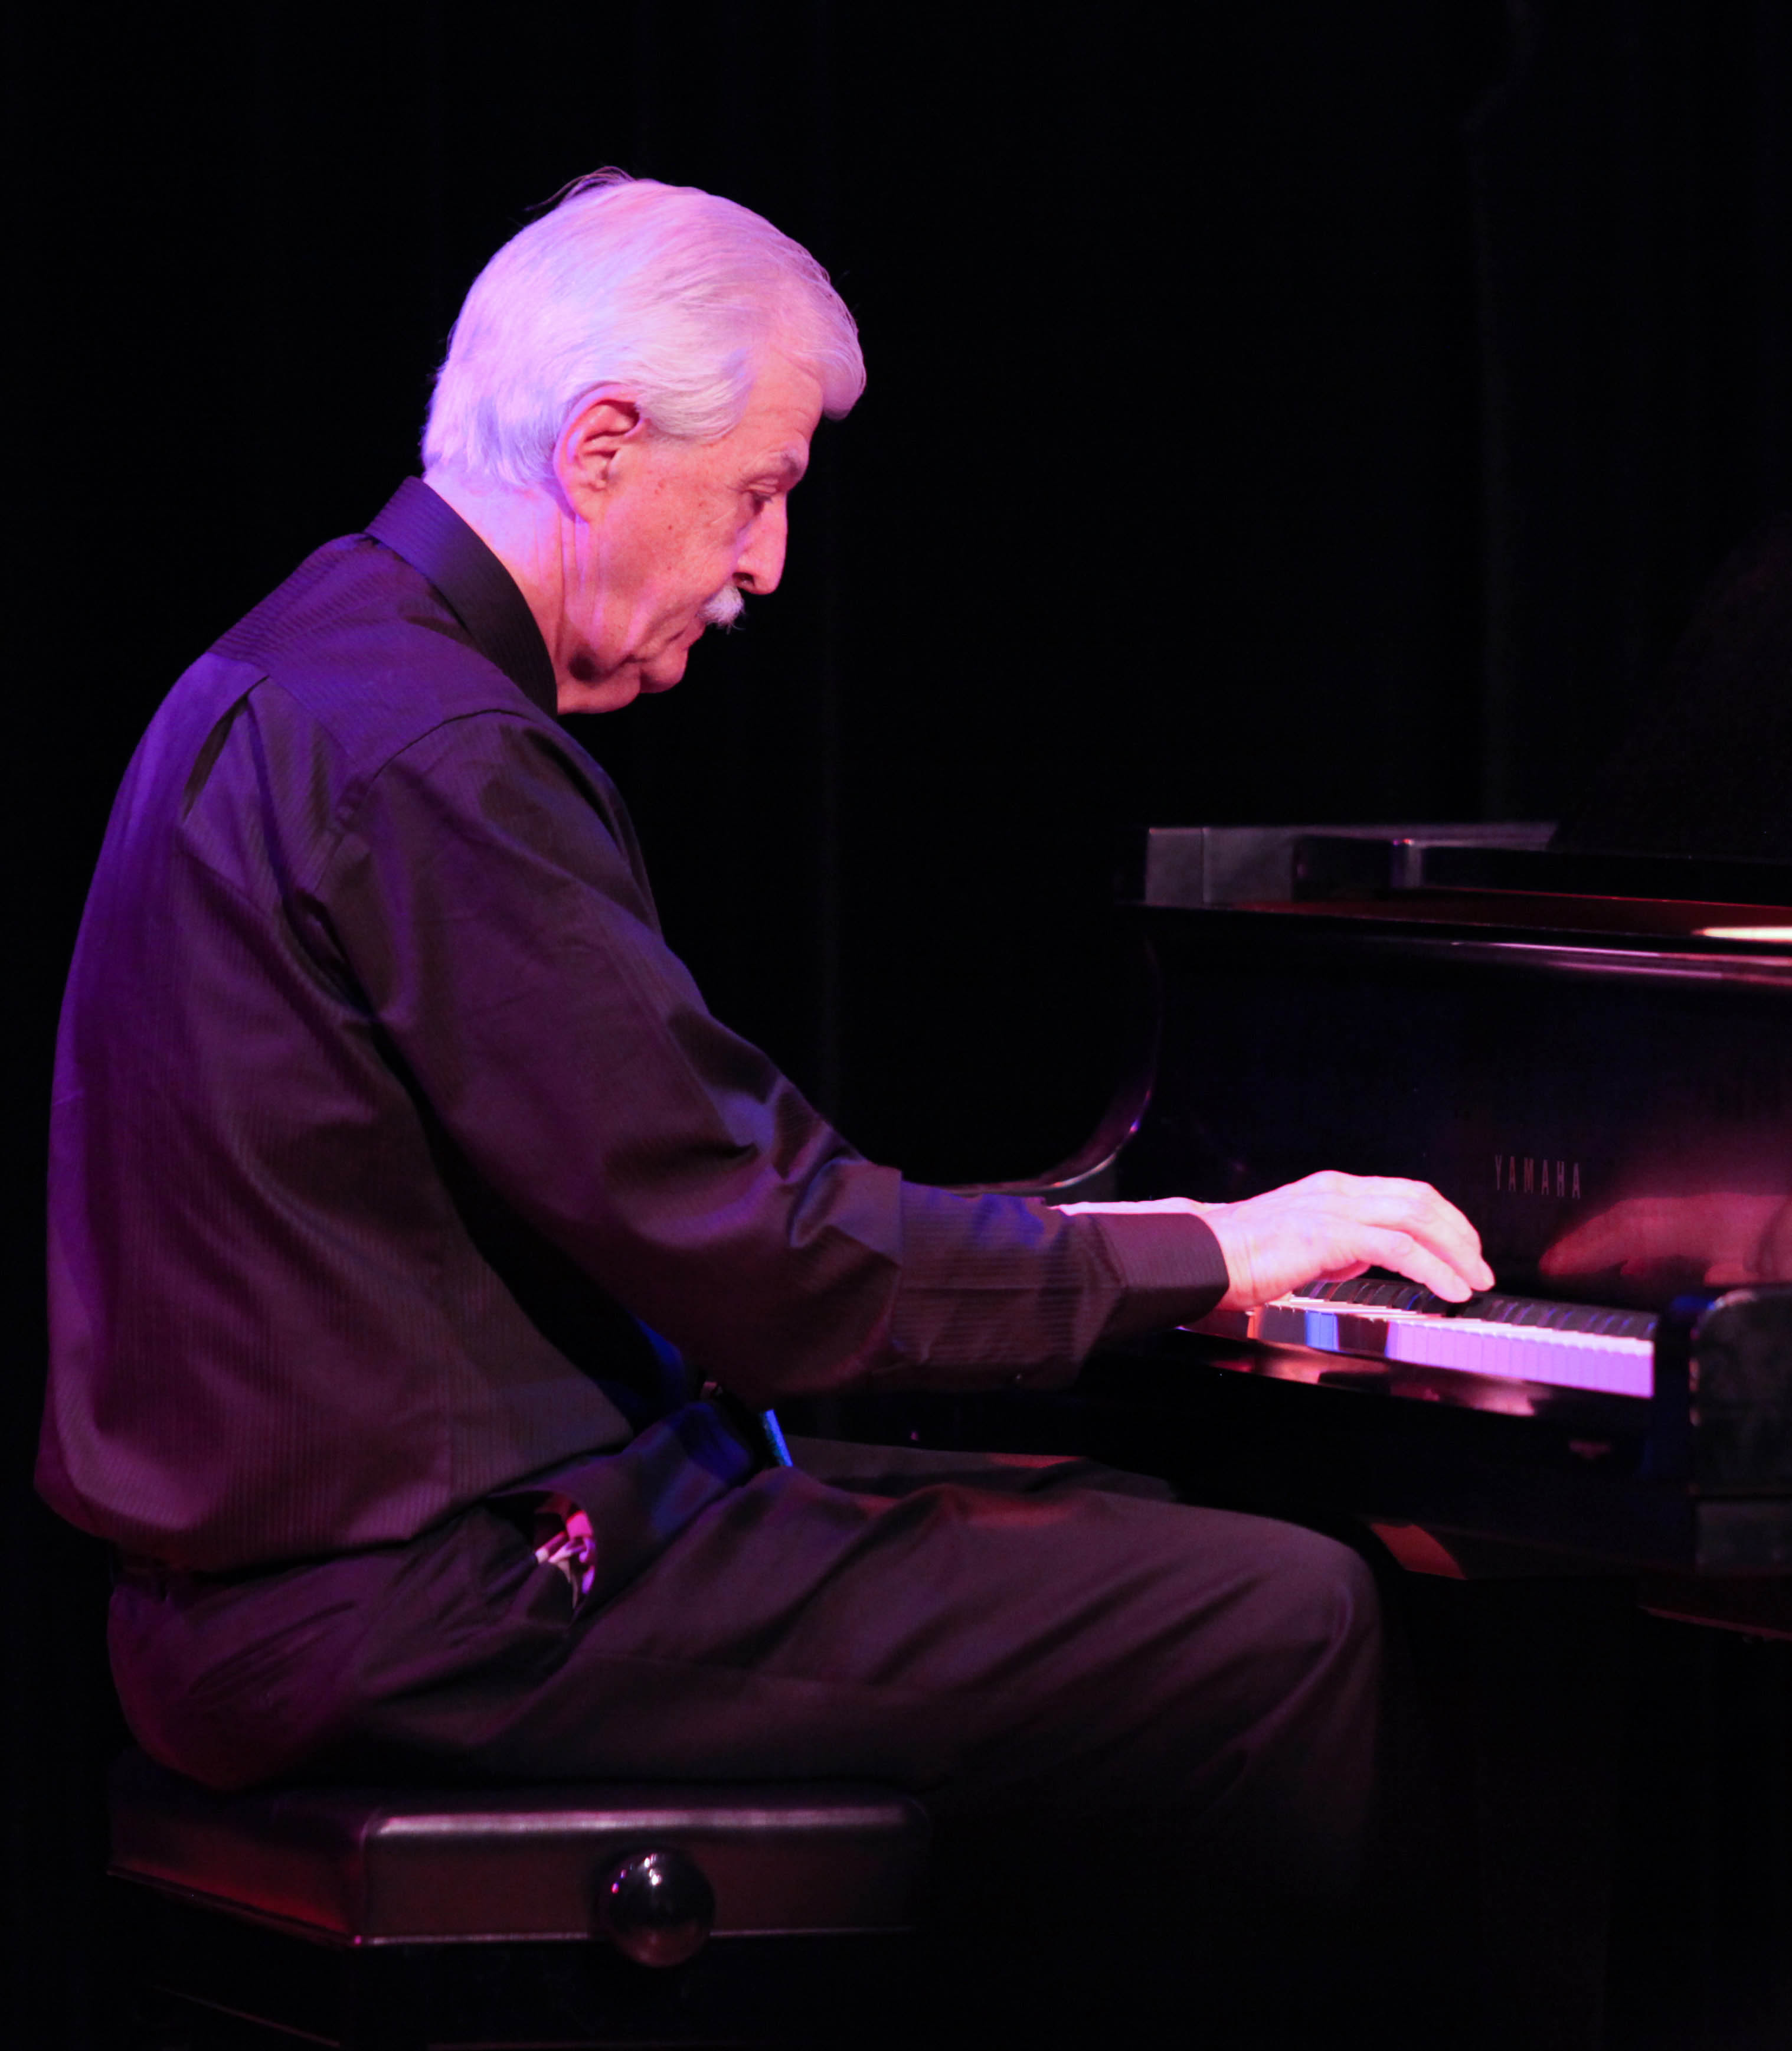 Jimmy Yancey's blues piano styling as performed by Butch Thompson.